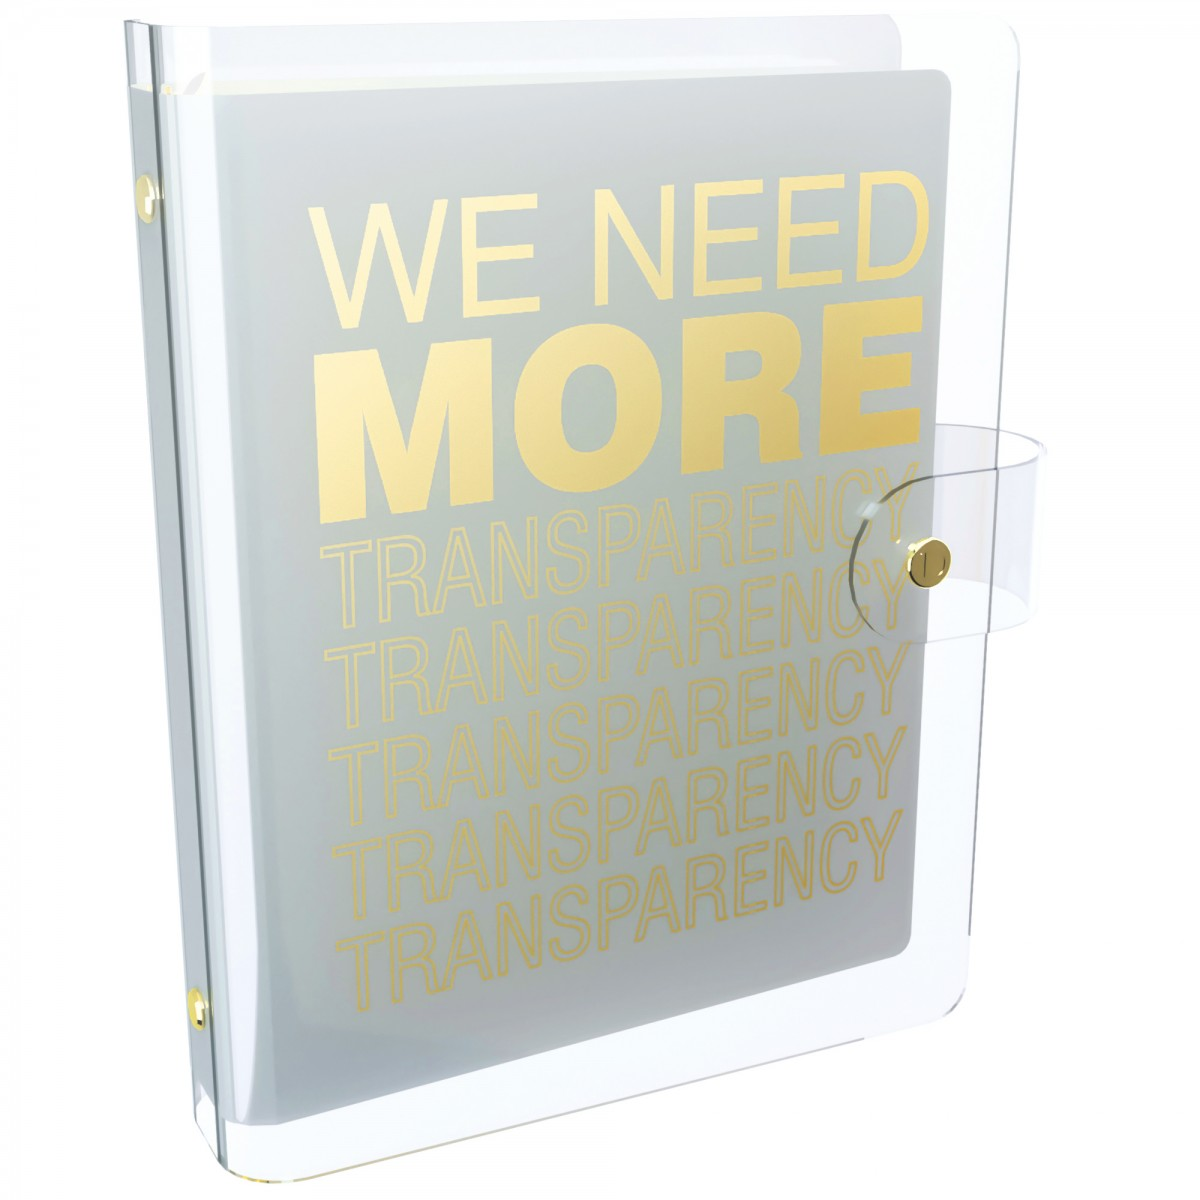 DISCAGENDA CLARITY CLEAR PVC PLANNER COVER - WE NEED MORE TRANSPARENCY (WHITE), RINGBOUND, A5 SIZE